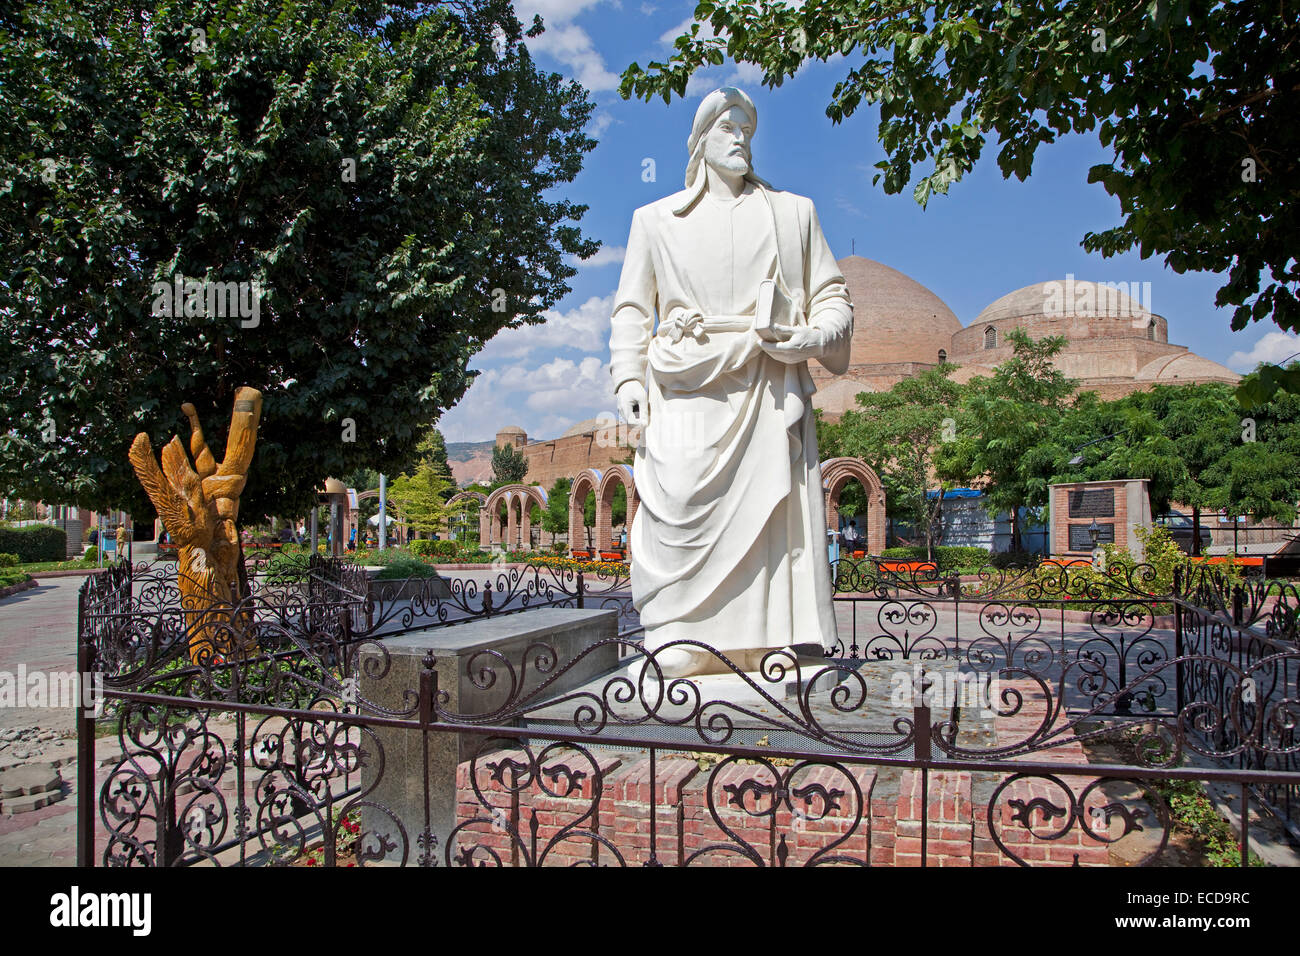 White statue of the Persian poet Khaqani in front of the Blue Mosque in the city Tabriz, East Azerbaijan, Iran - Stock Image